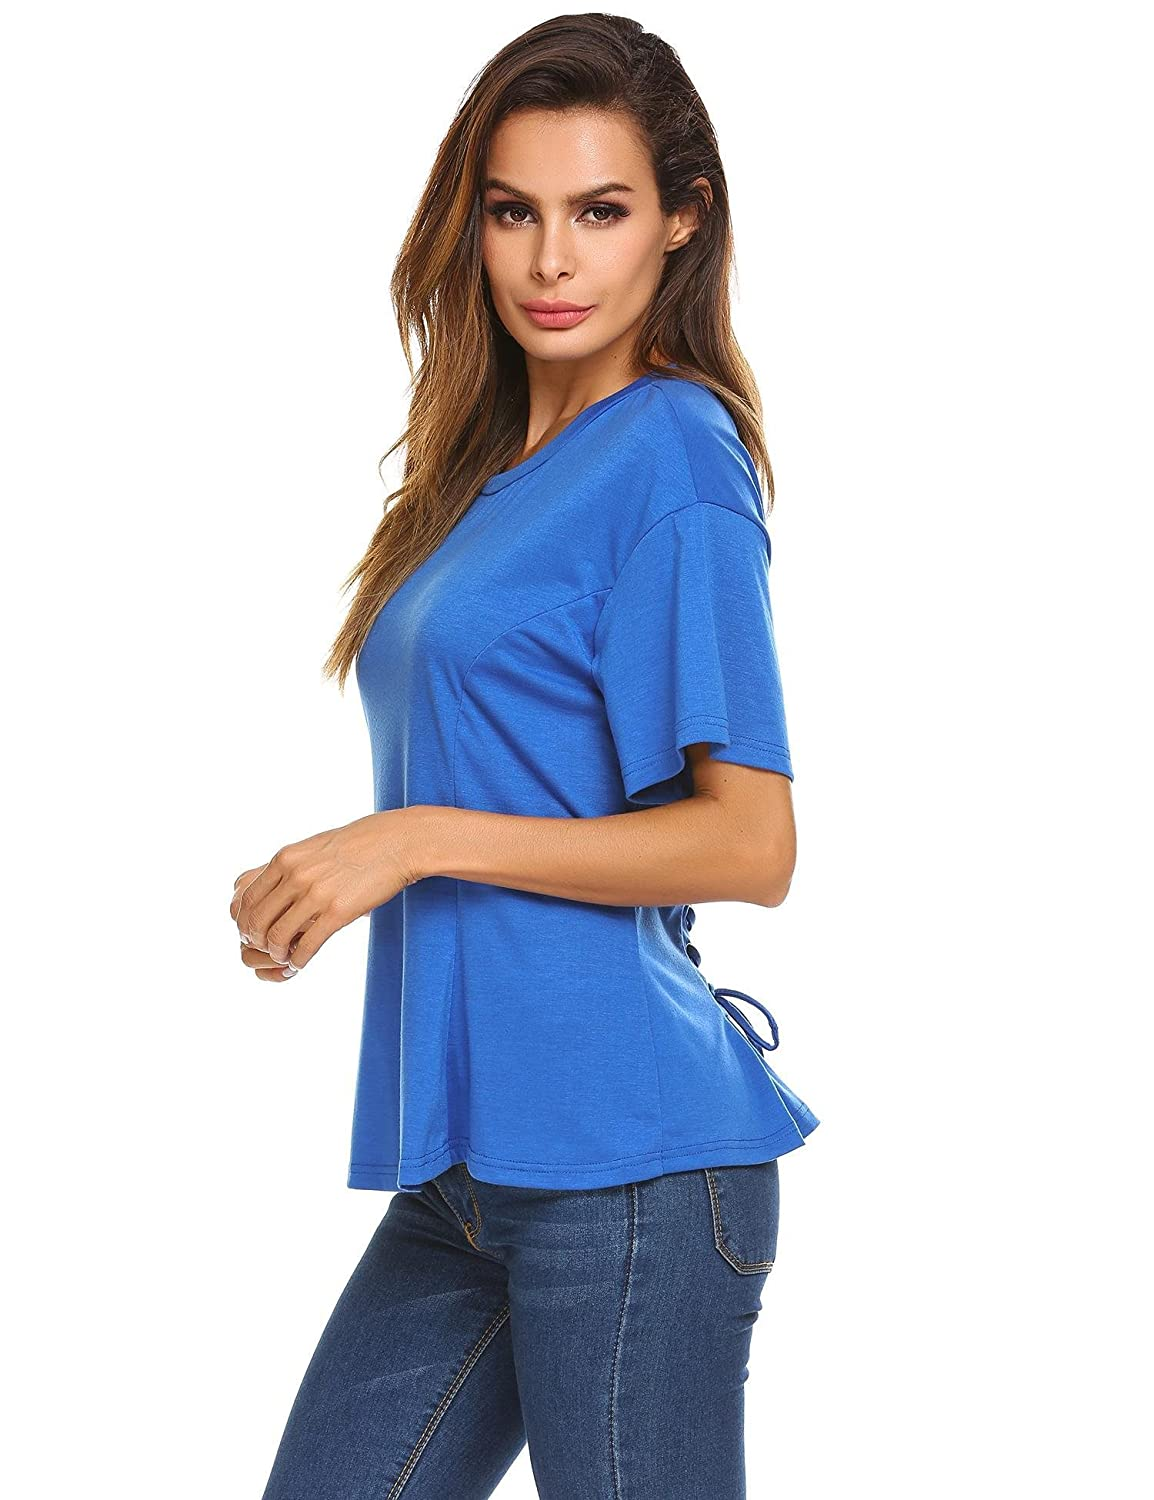 bluee Ouyilu Women ONeck Short Sleeve Solid Blouse with Back Lace up Criss Cross Casual Shirt